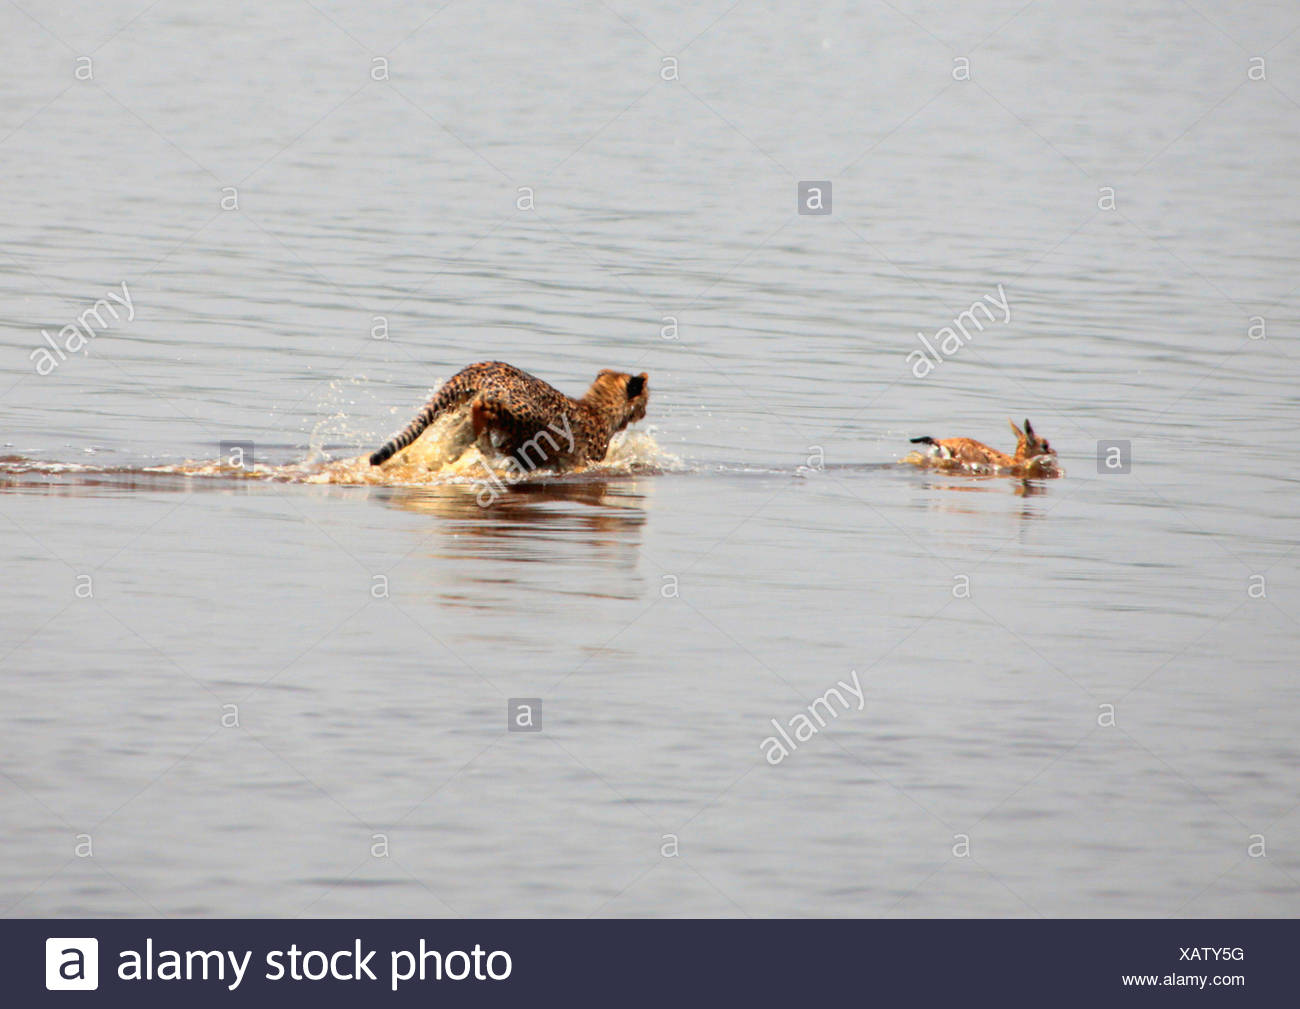 cheetah (Acinonyx jubatus), young animal hunting in the water, Tanzania, Serengeti National Park - Stock Image